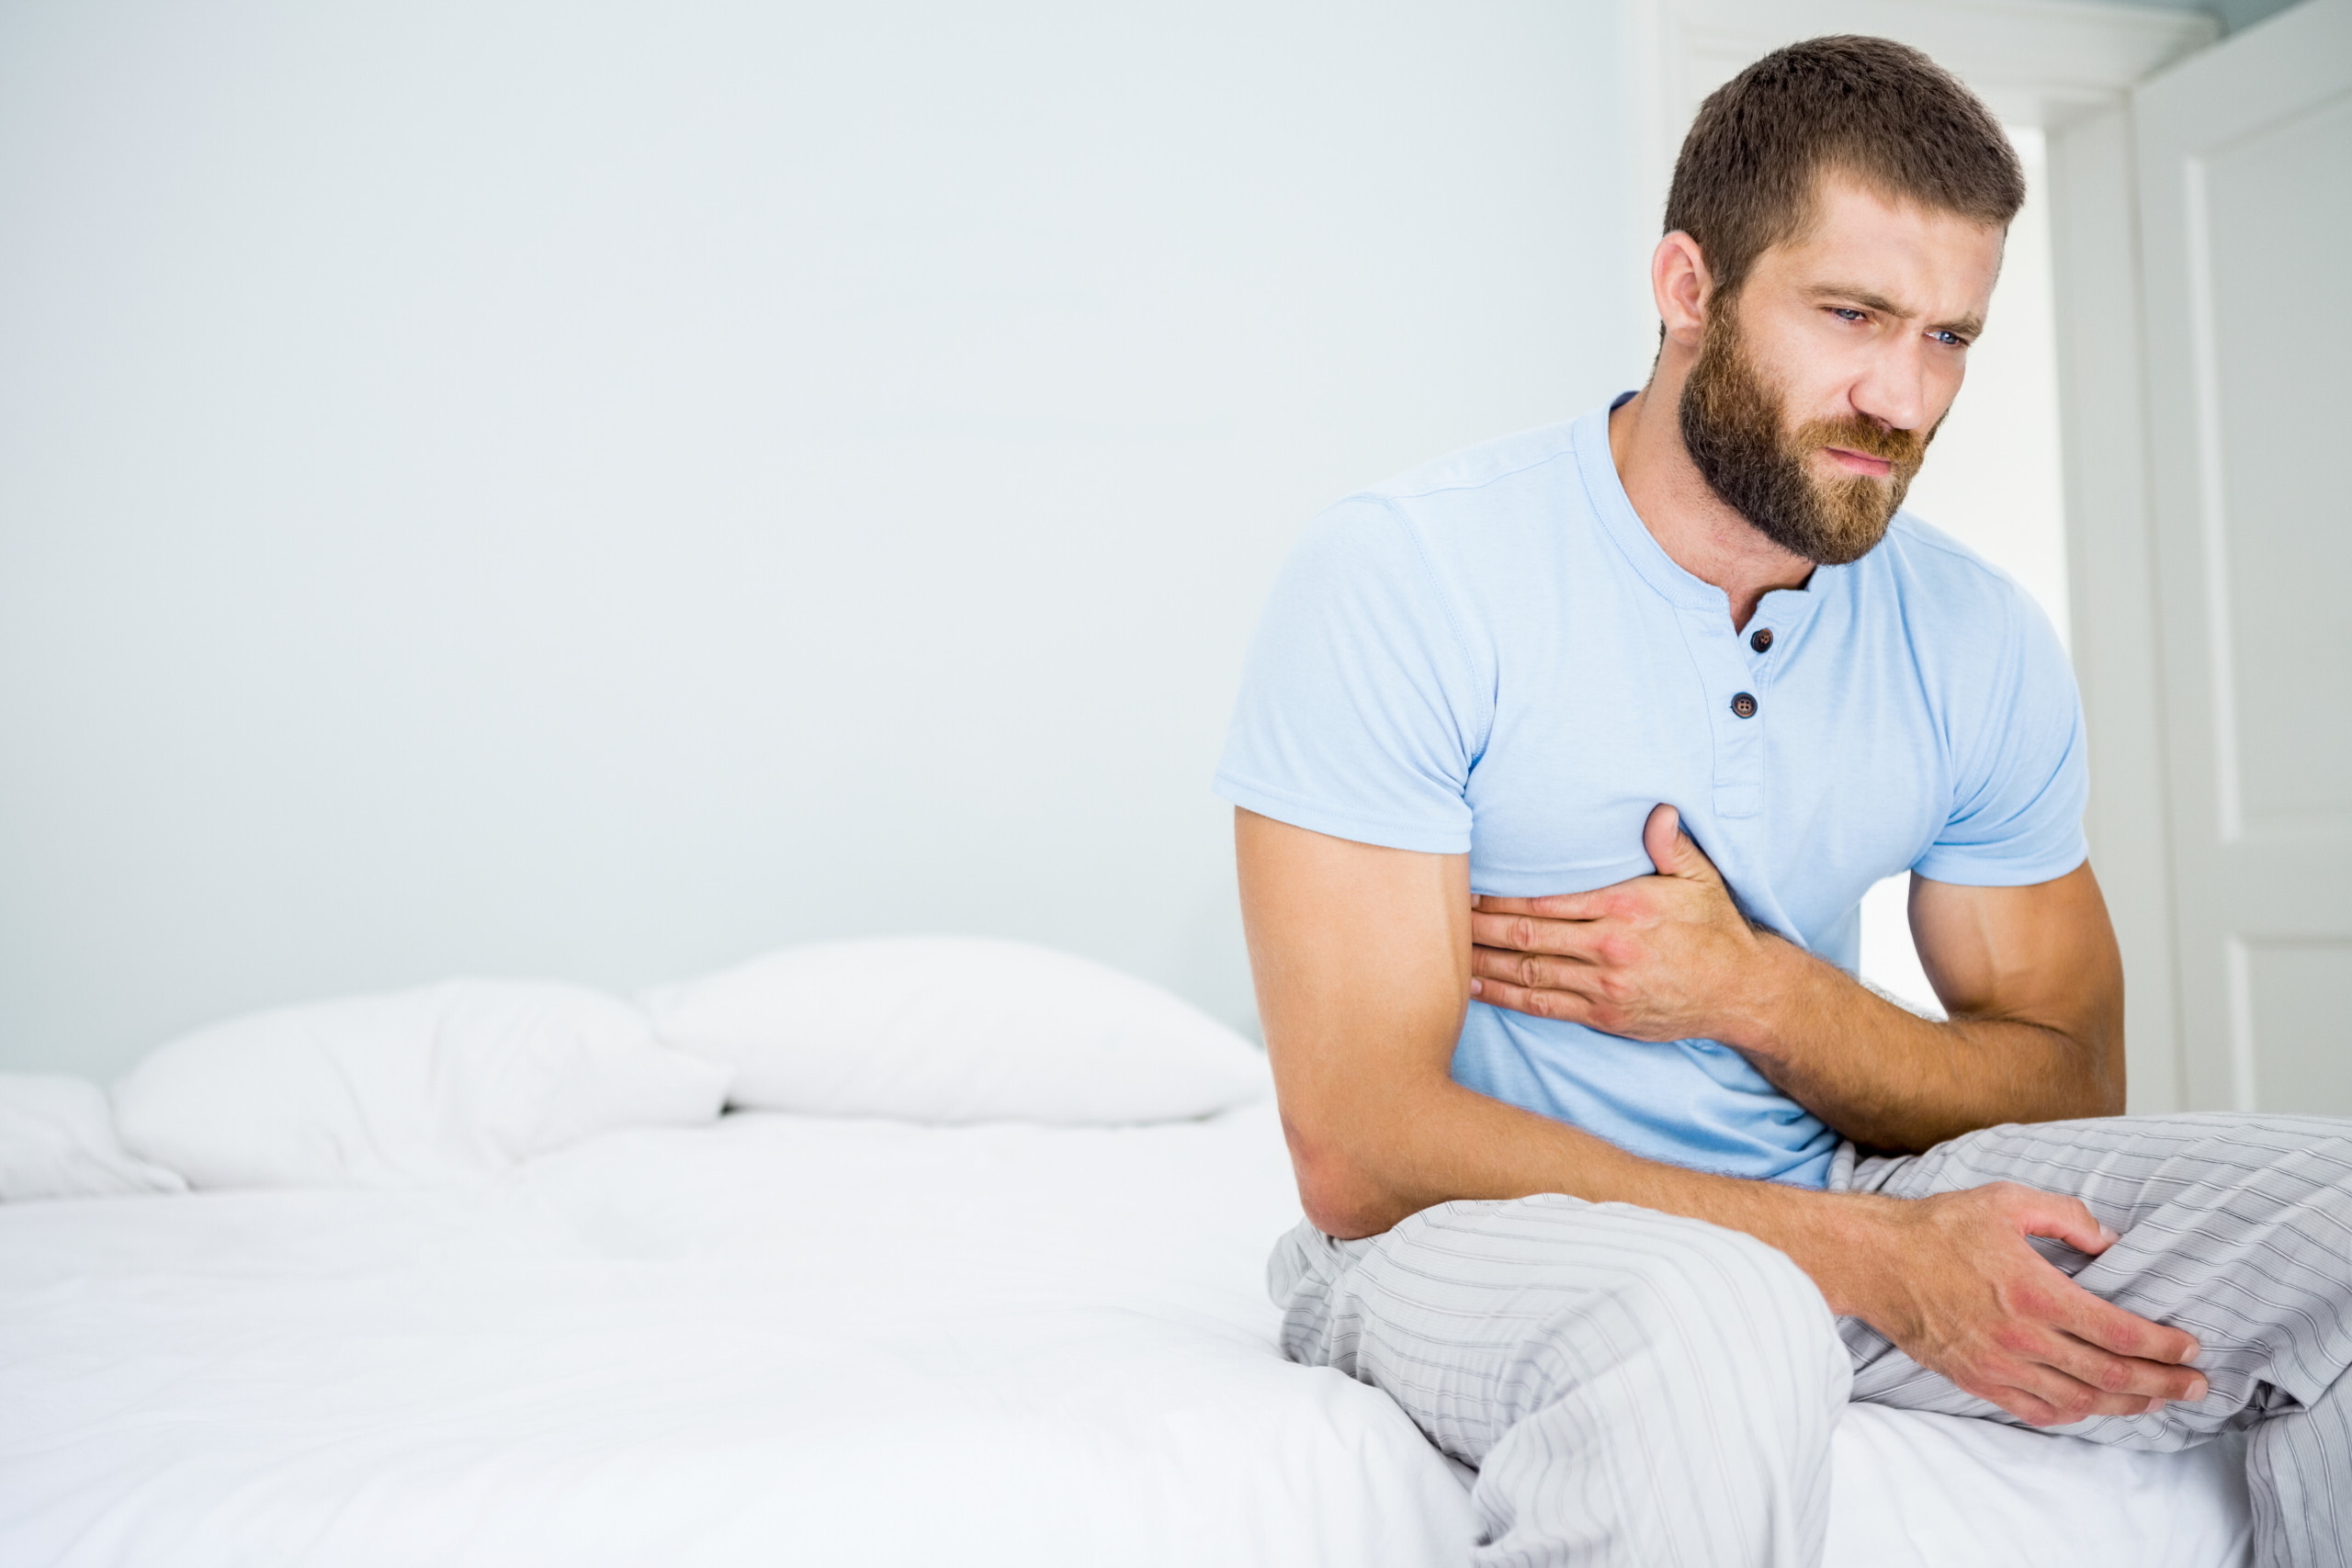 Can Chest Pain Be the Only Symptom of Arrhythmia?